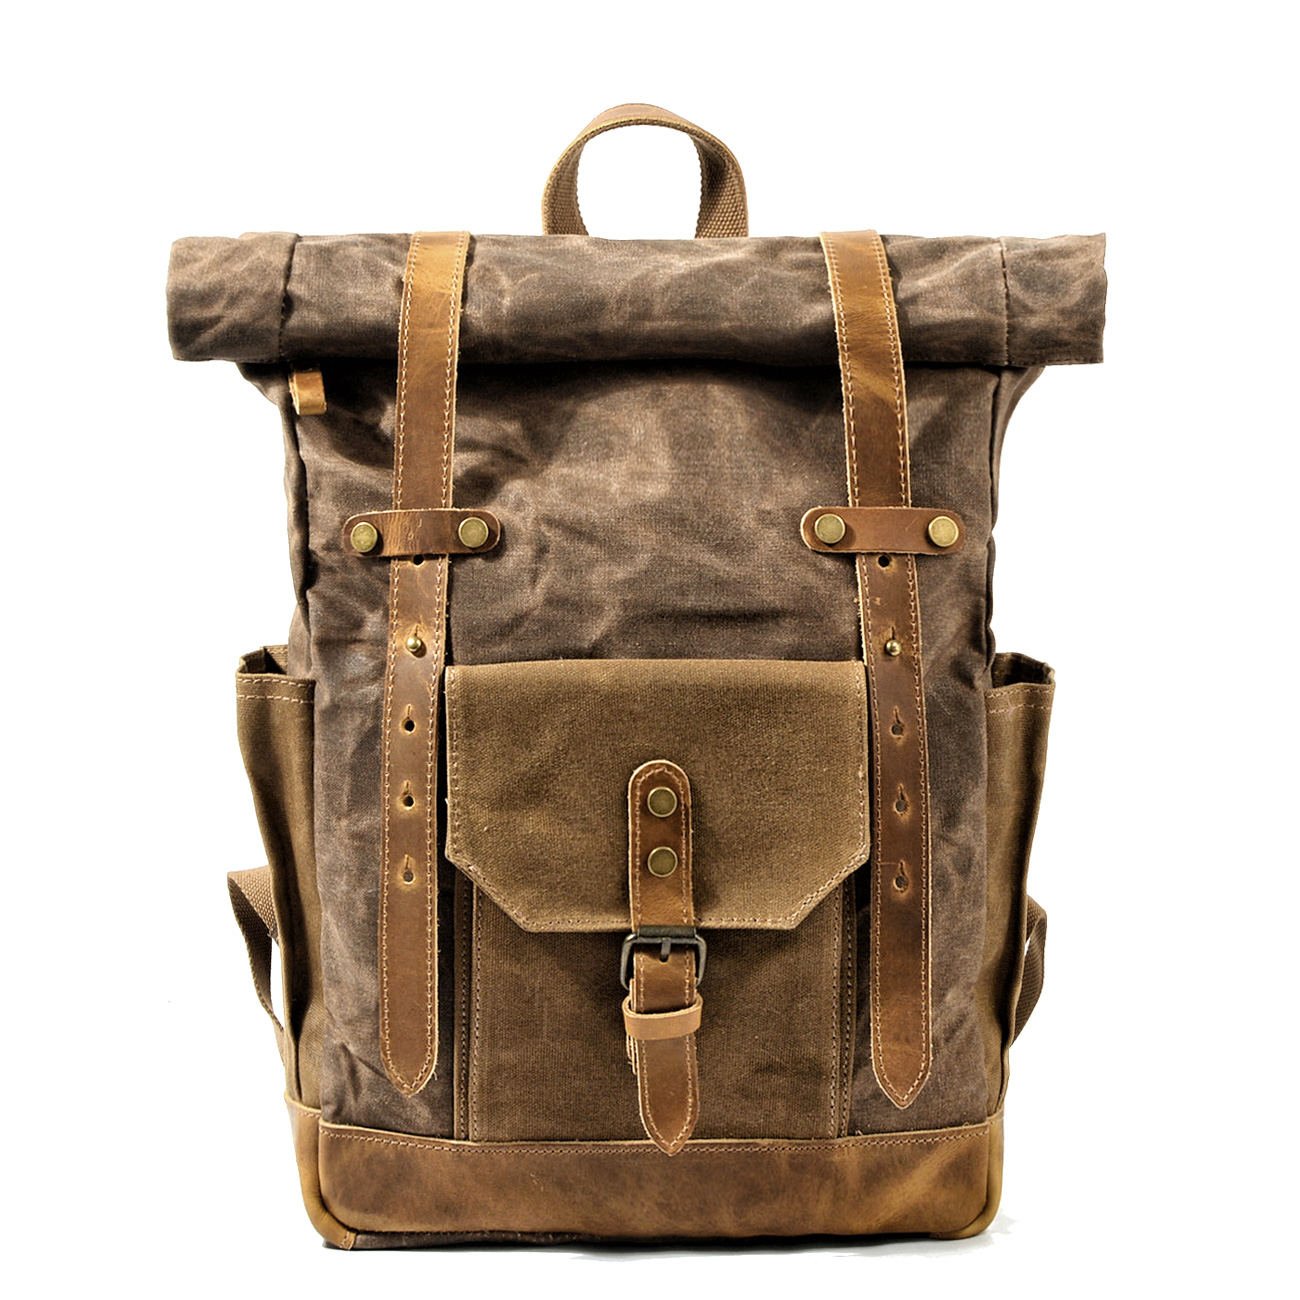 MUCHUAN Vintage Oil Waxed Canvas Leather Backpack Large Capacity Teenager Traveling Waterproof Daypacks 14